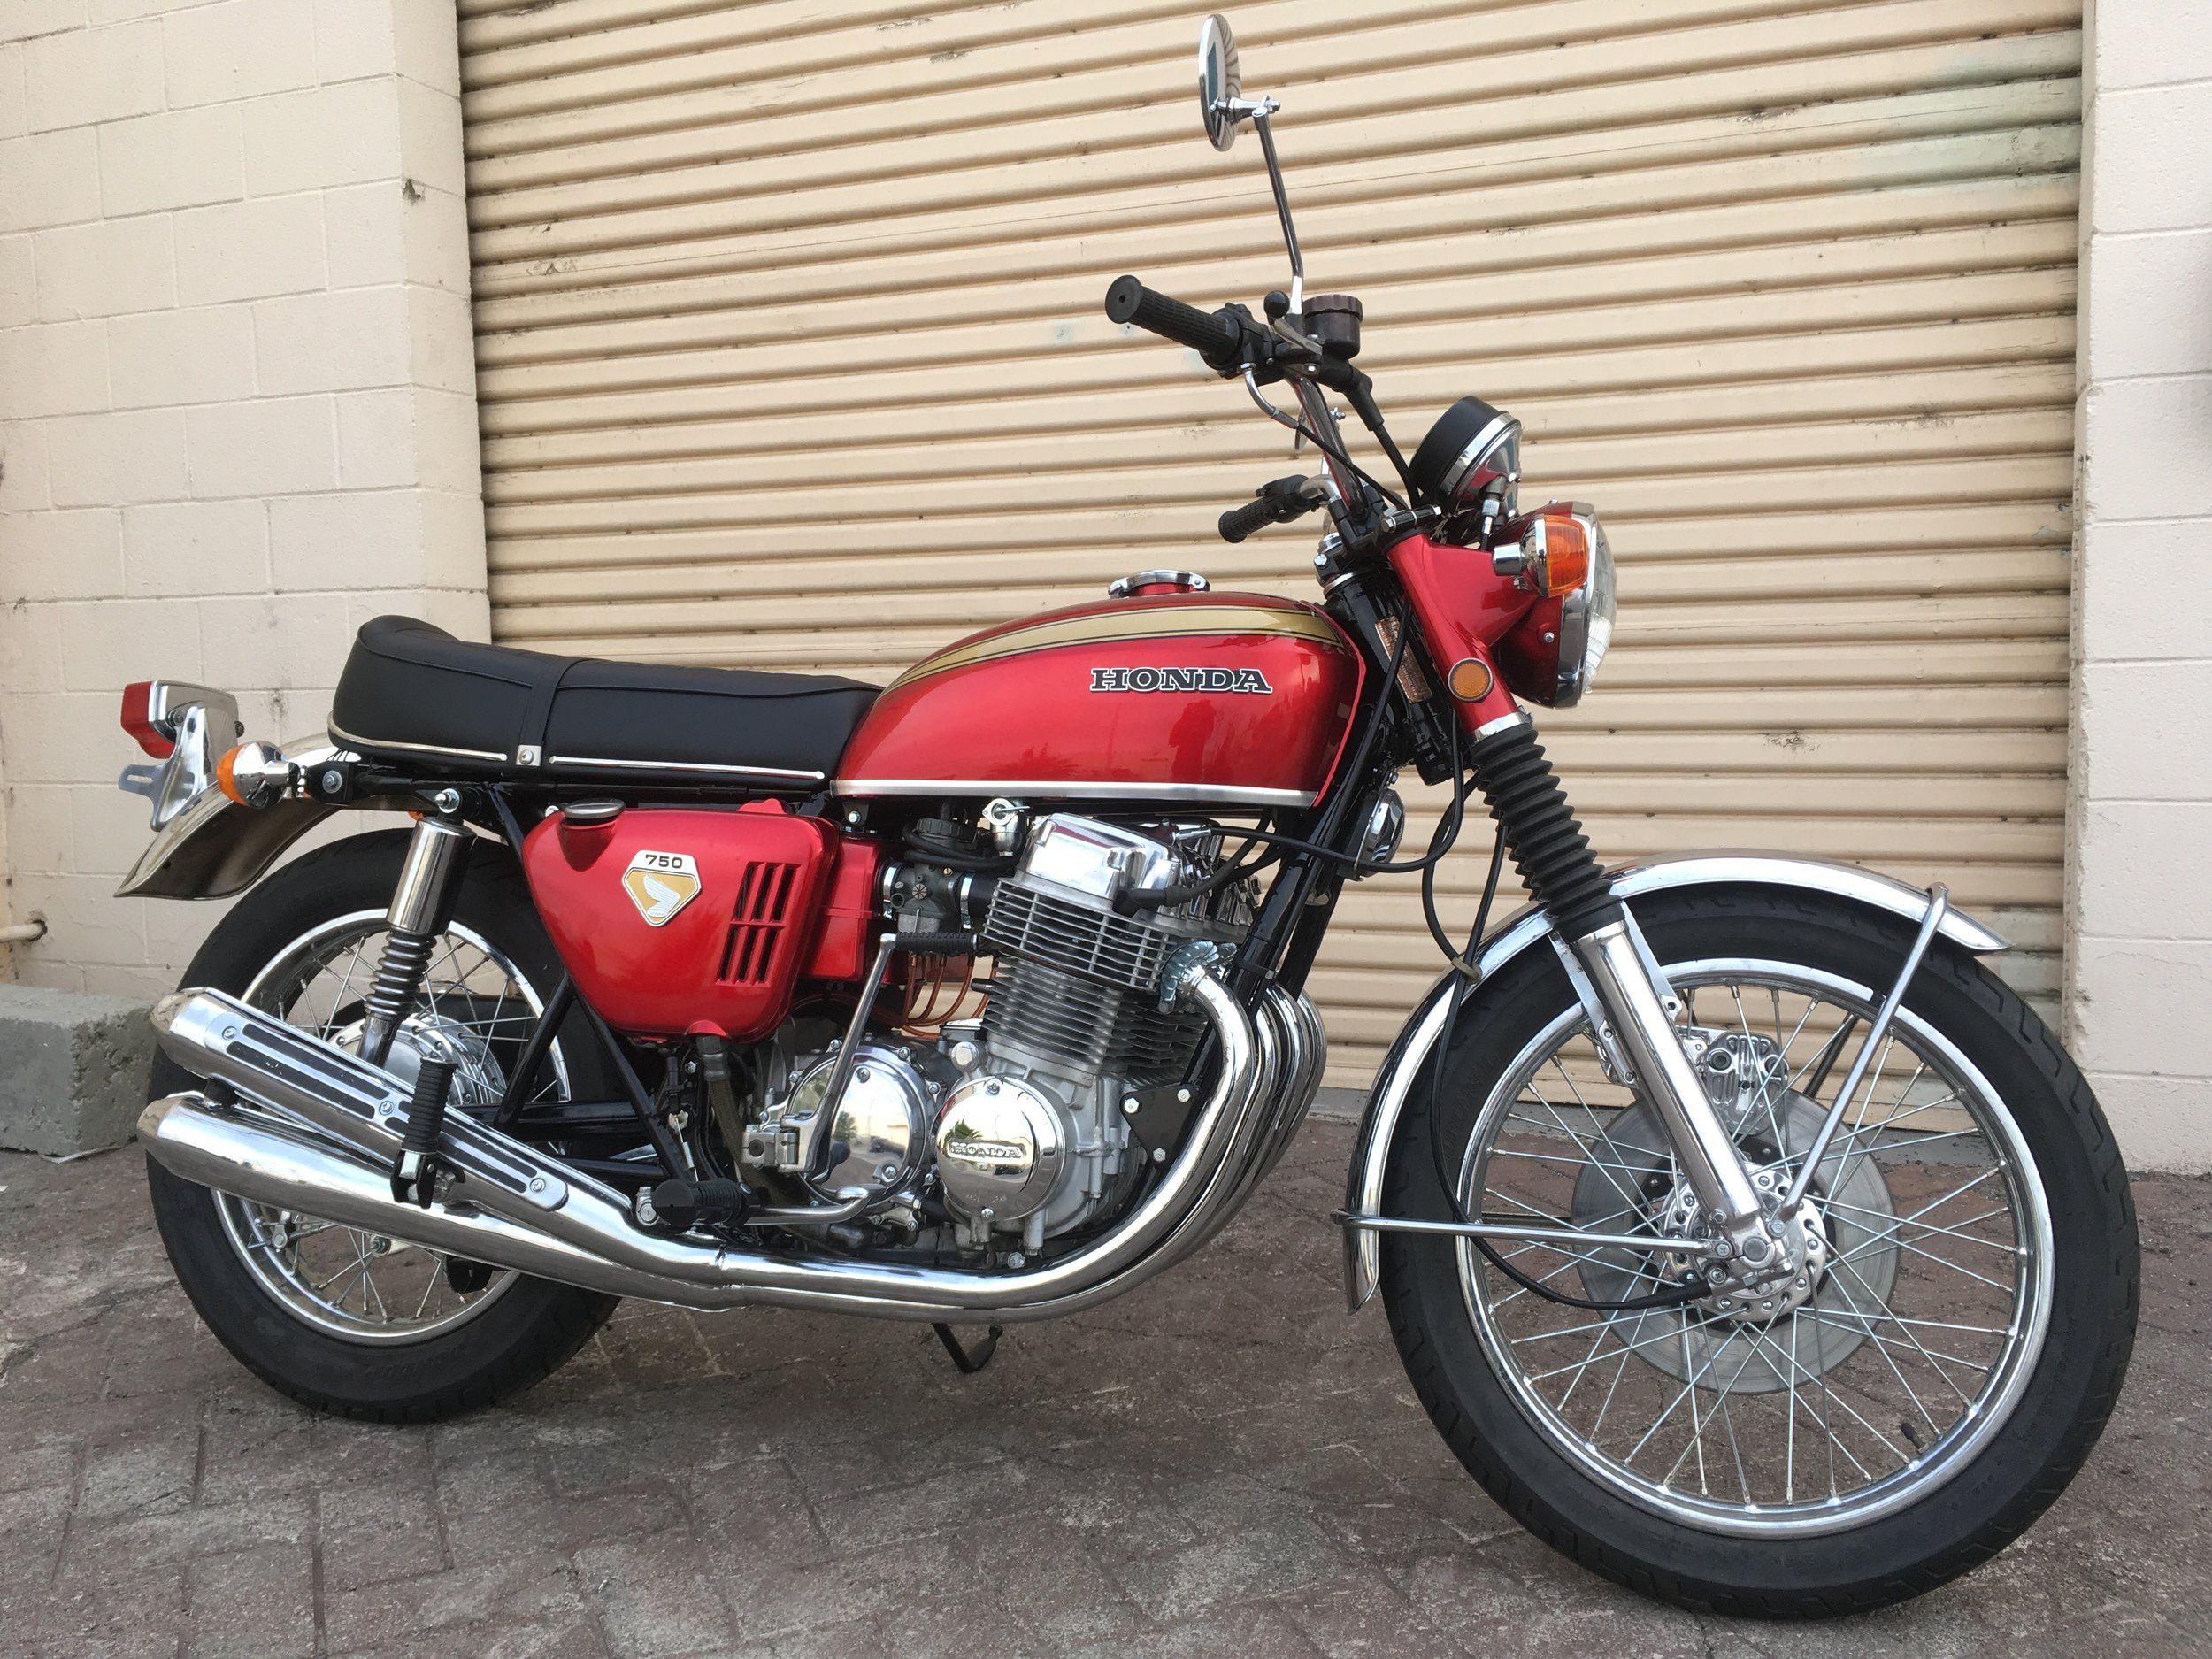 SOLD/cb 750 - 1970 (red)